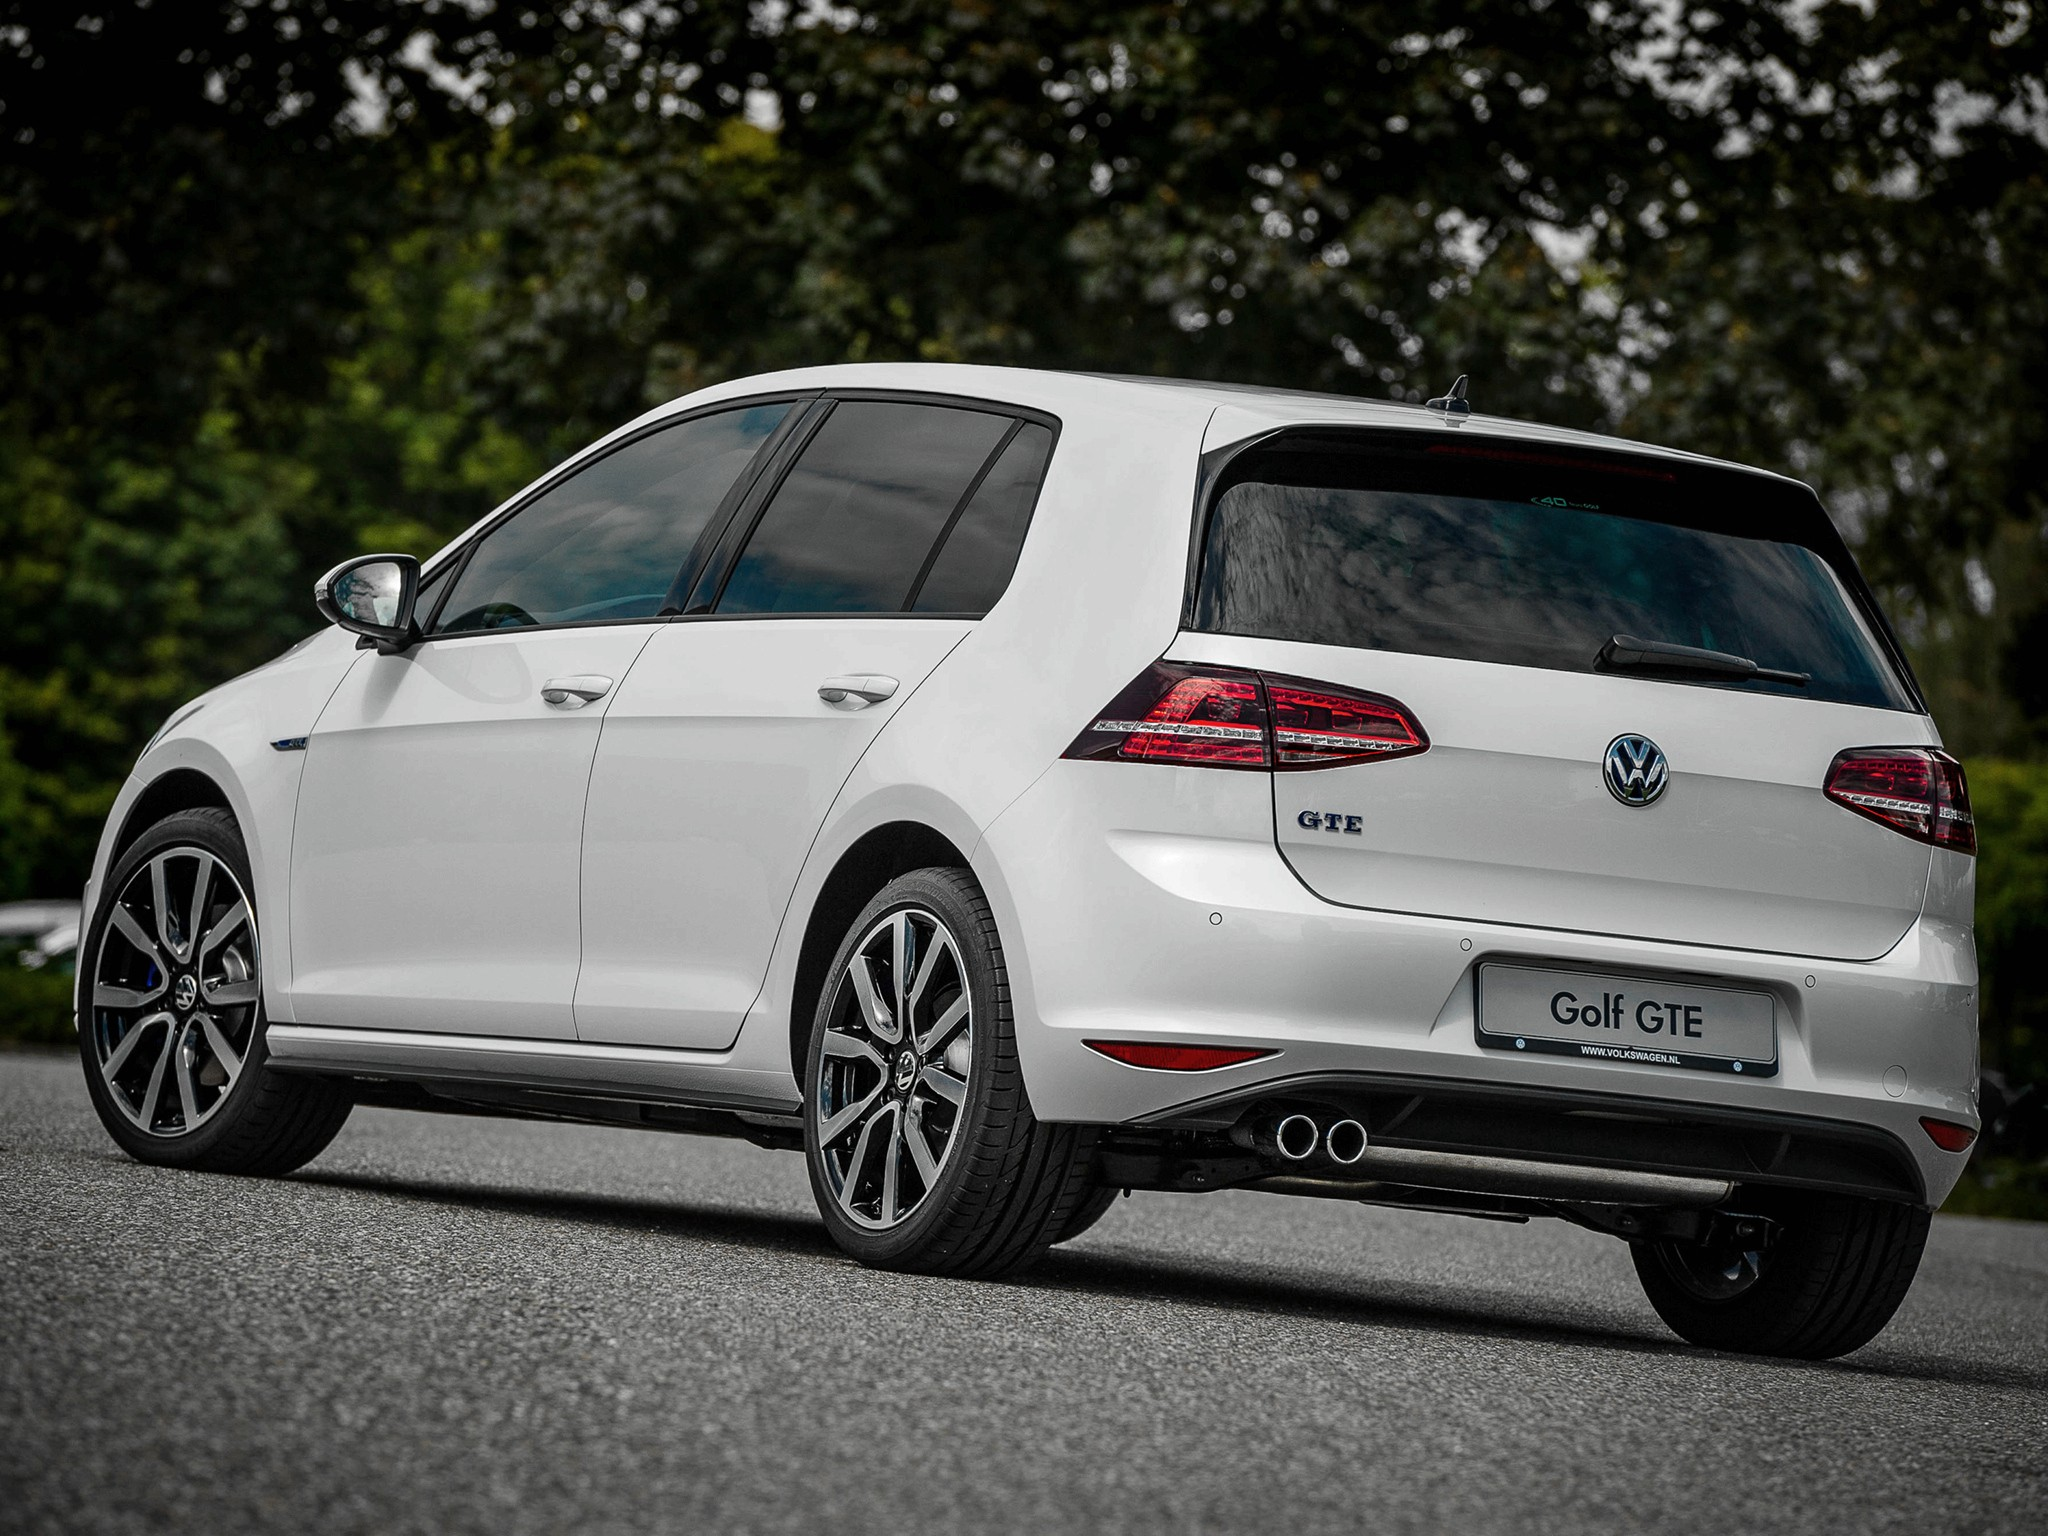 volkswagen_golf_gte_5-door_2